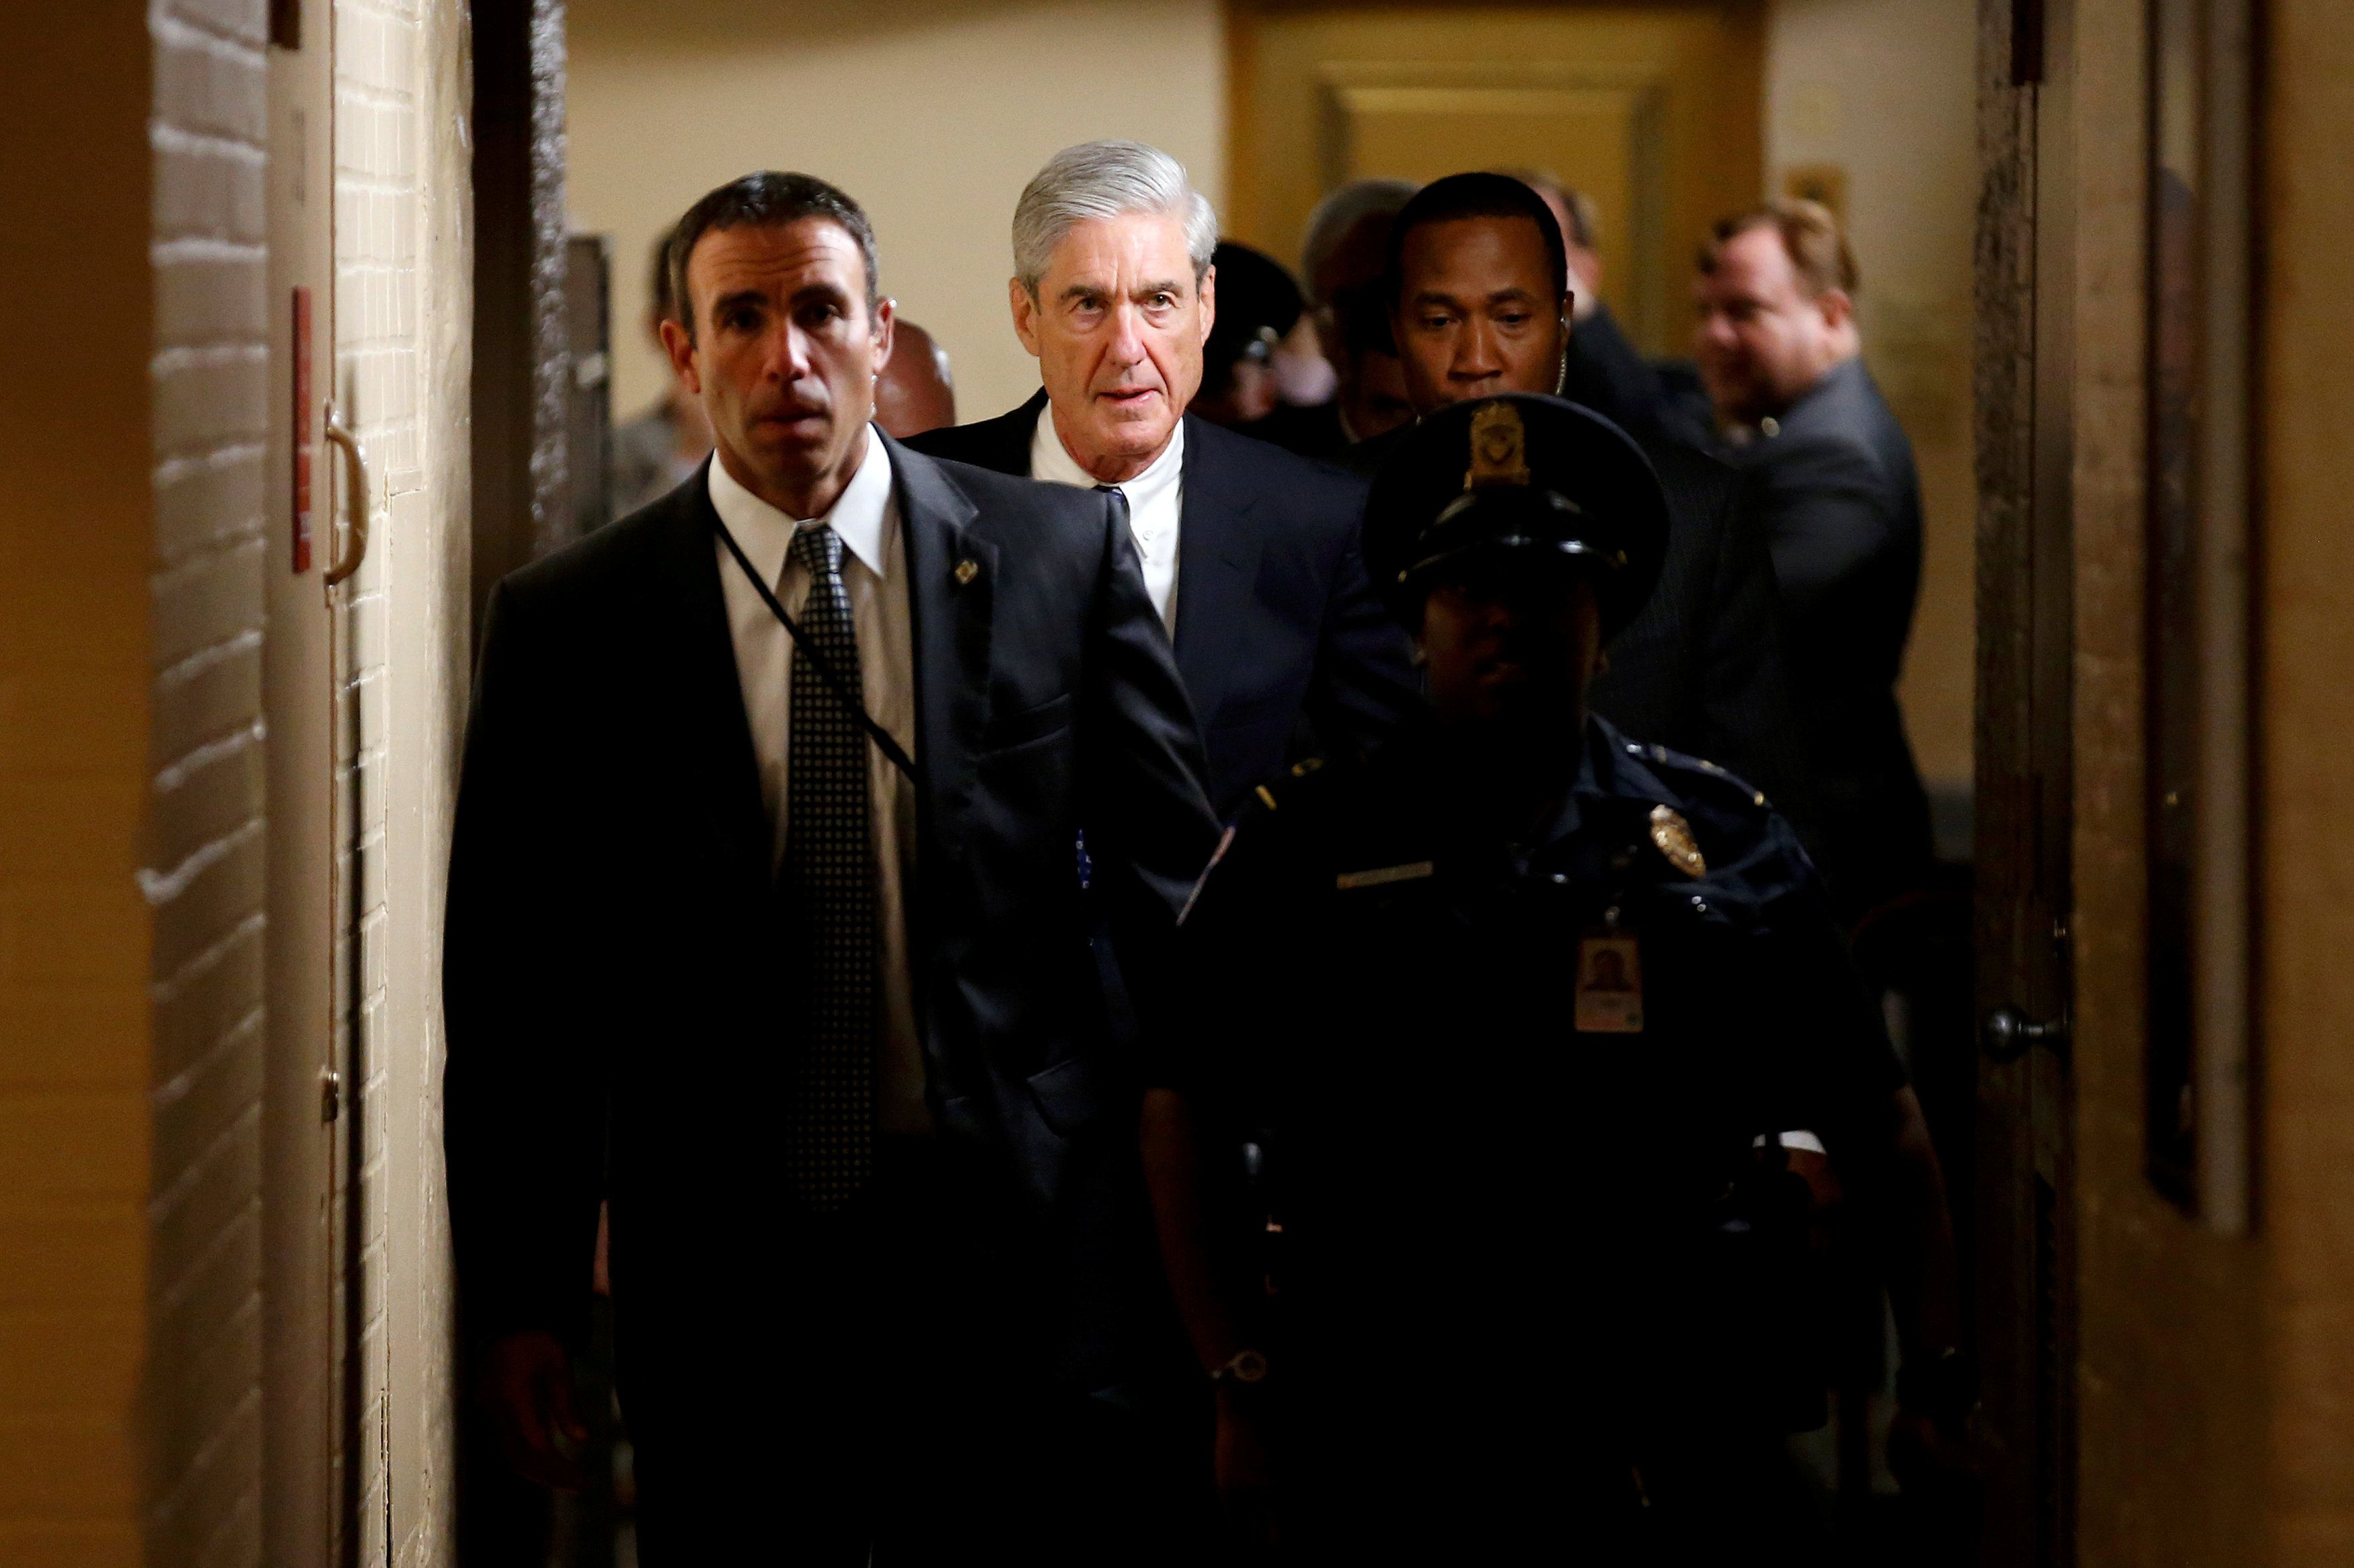 Mueller's team reveals obstruction, collusion questions he wants to ask President Trump